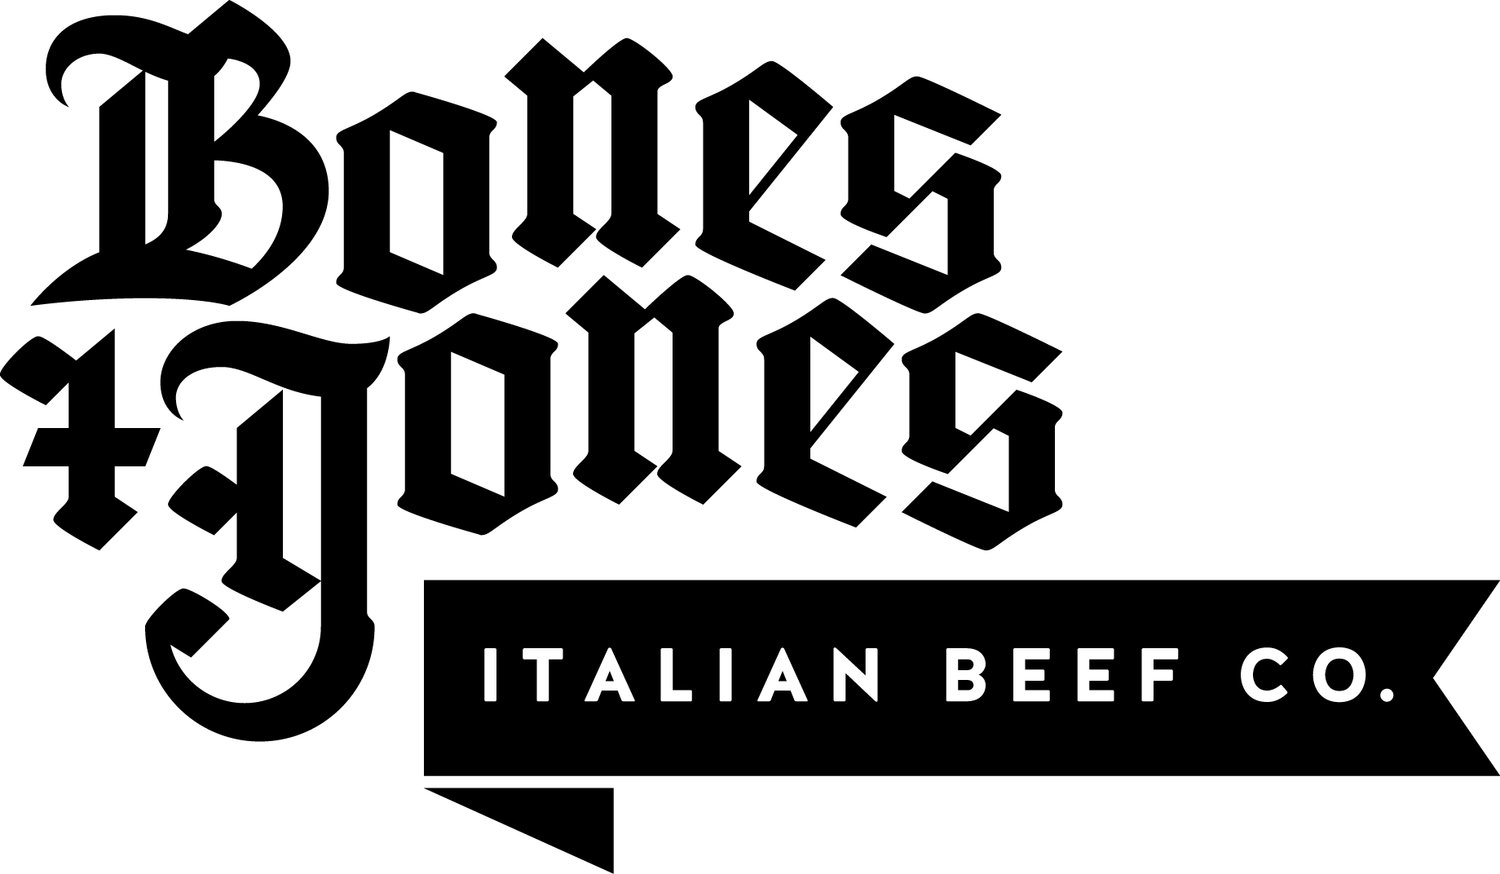 Bones & Jones Italian Beef Co. | Santiago, Chile